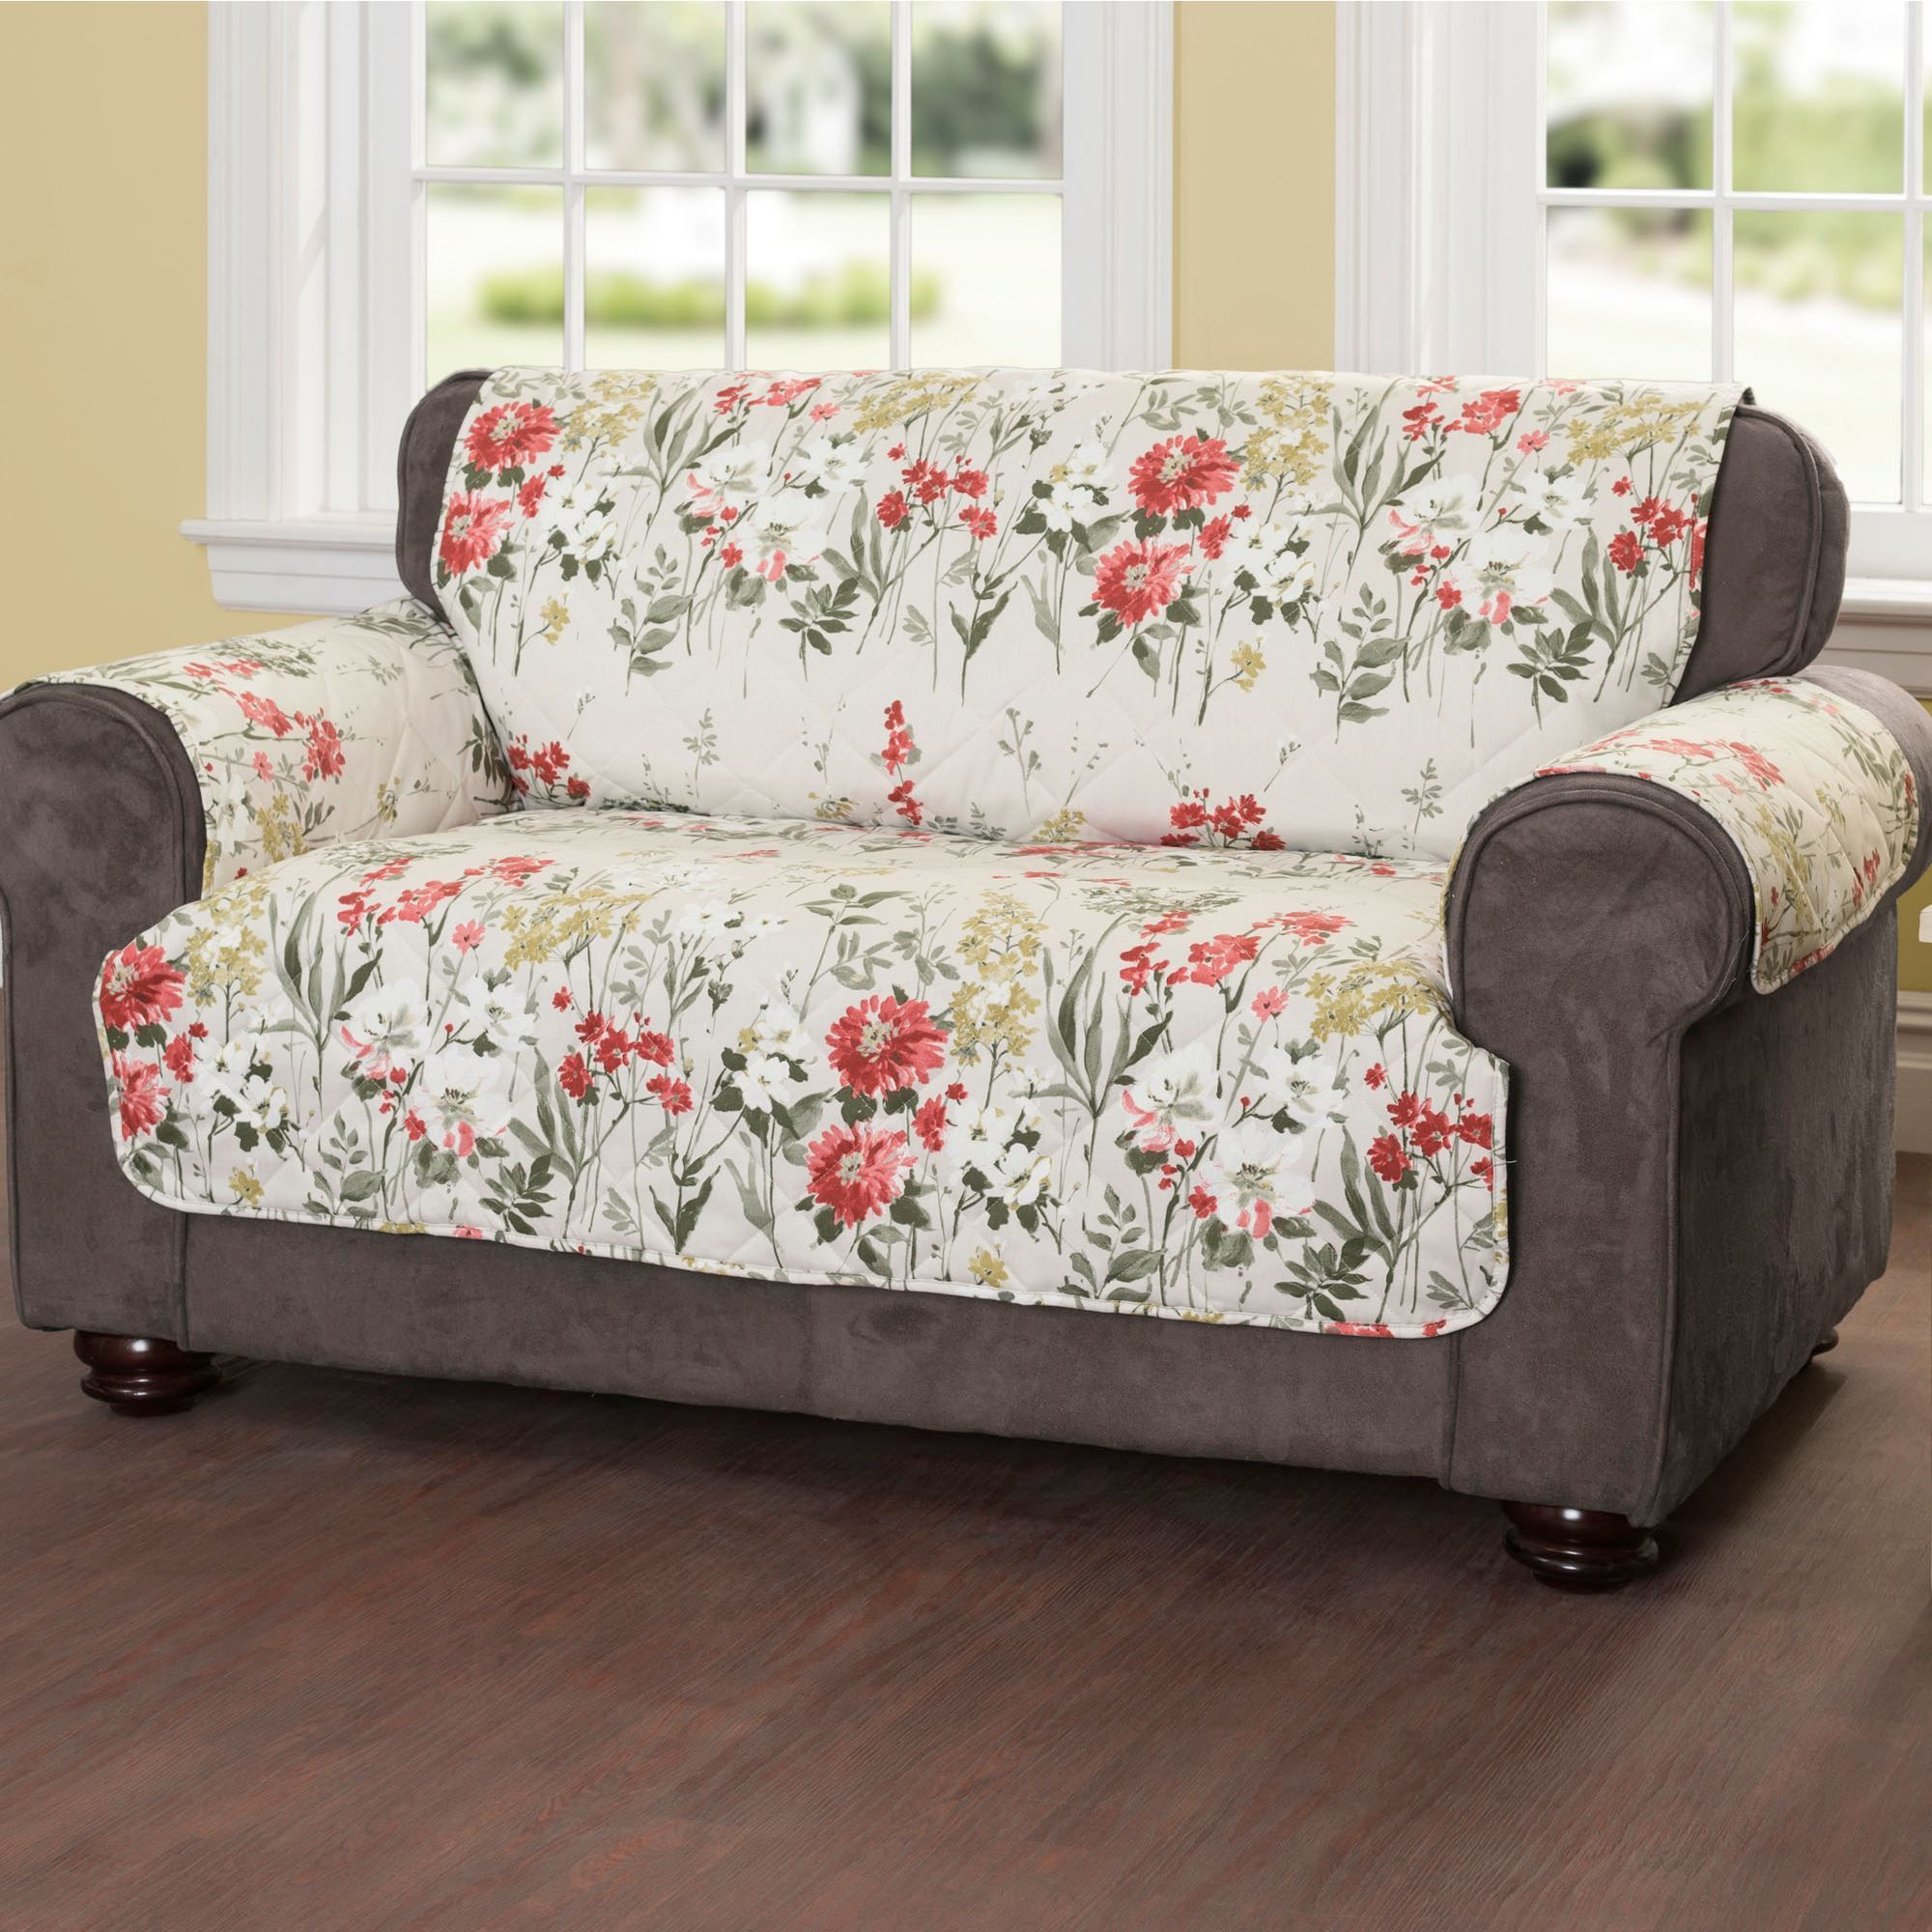 Floral Meadow Quilted Furniture Protectors